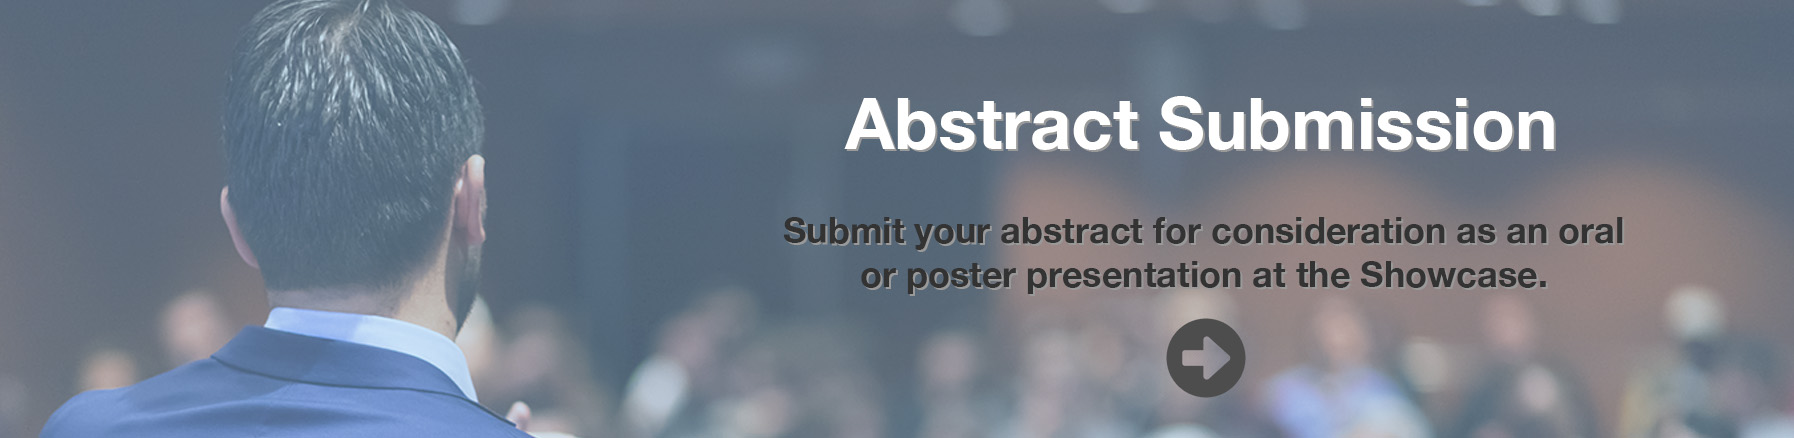 Abstract Submission to SWSLHD